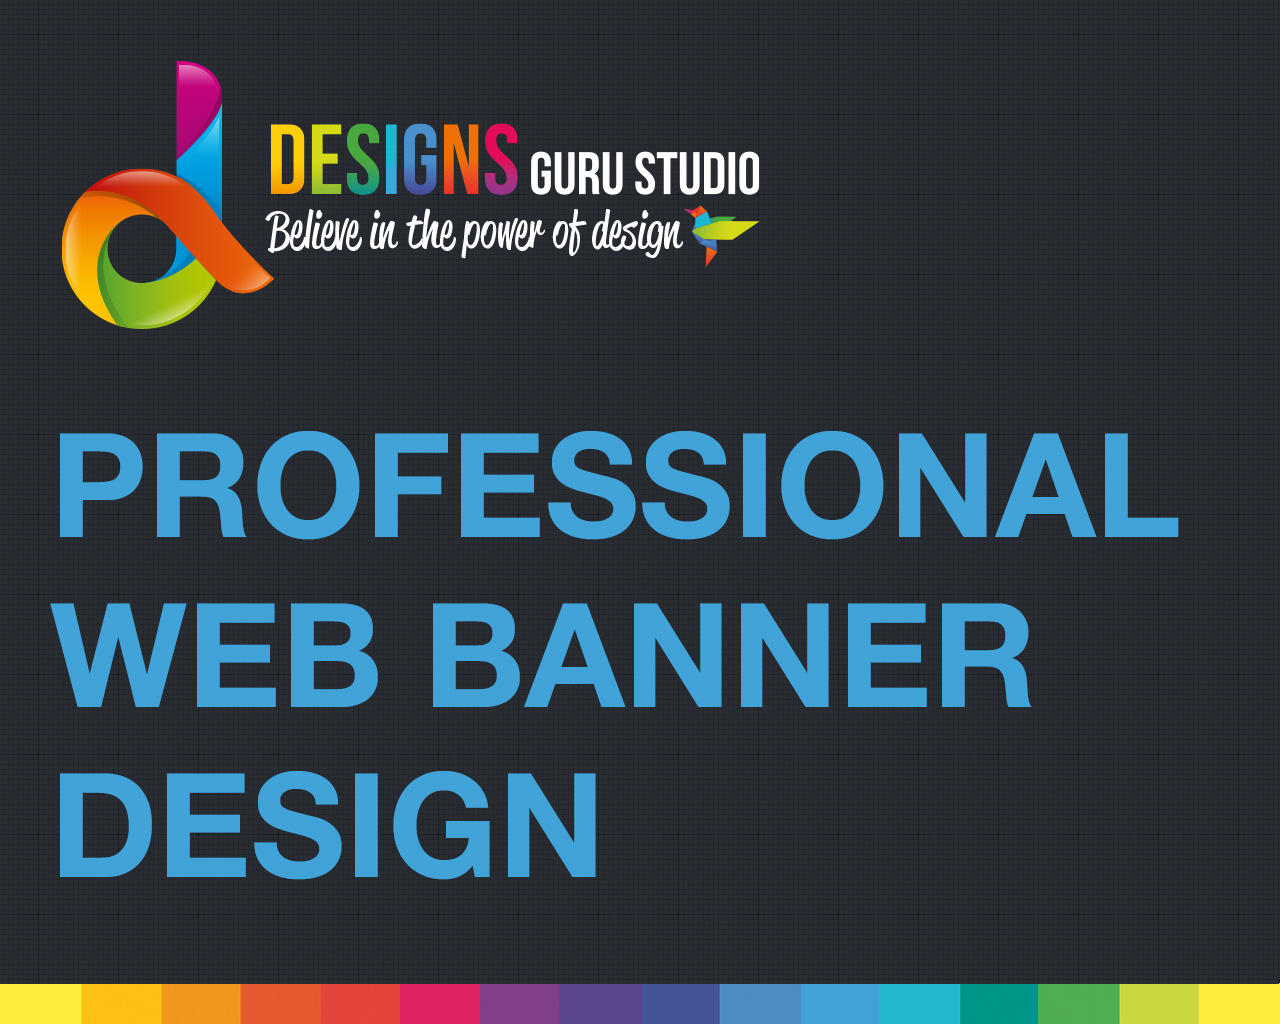 Professional Web Banner Design by designsgurustudio - 94709